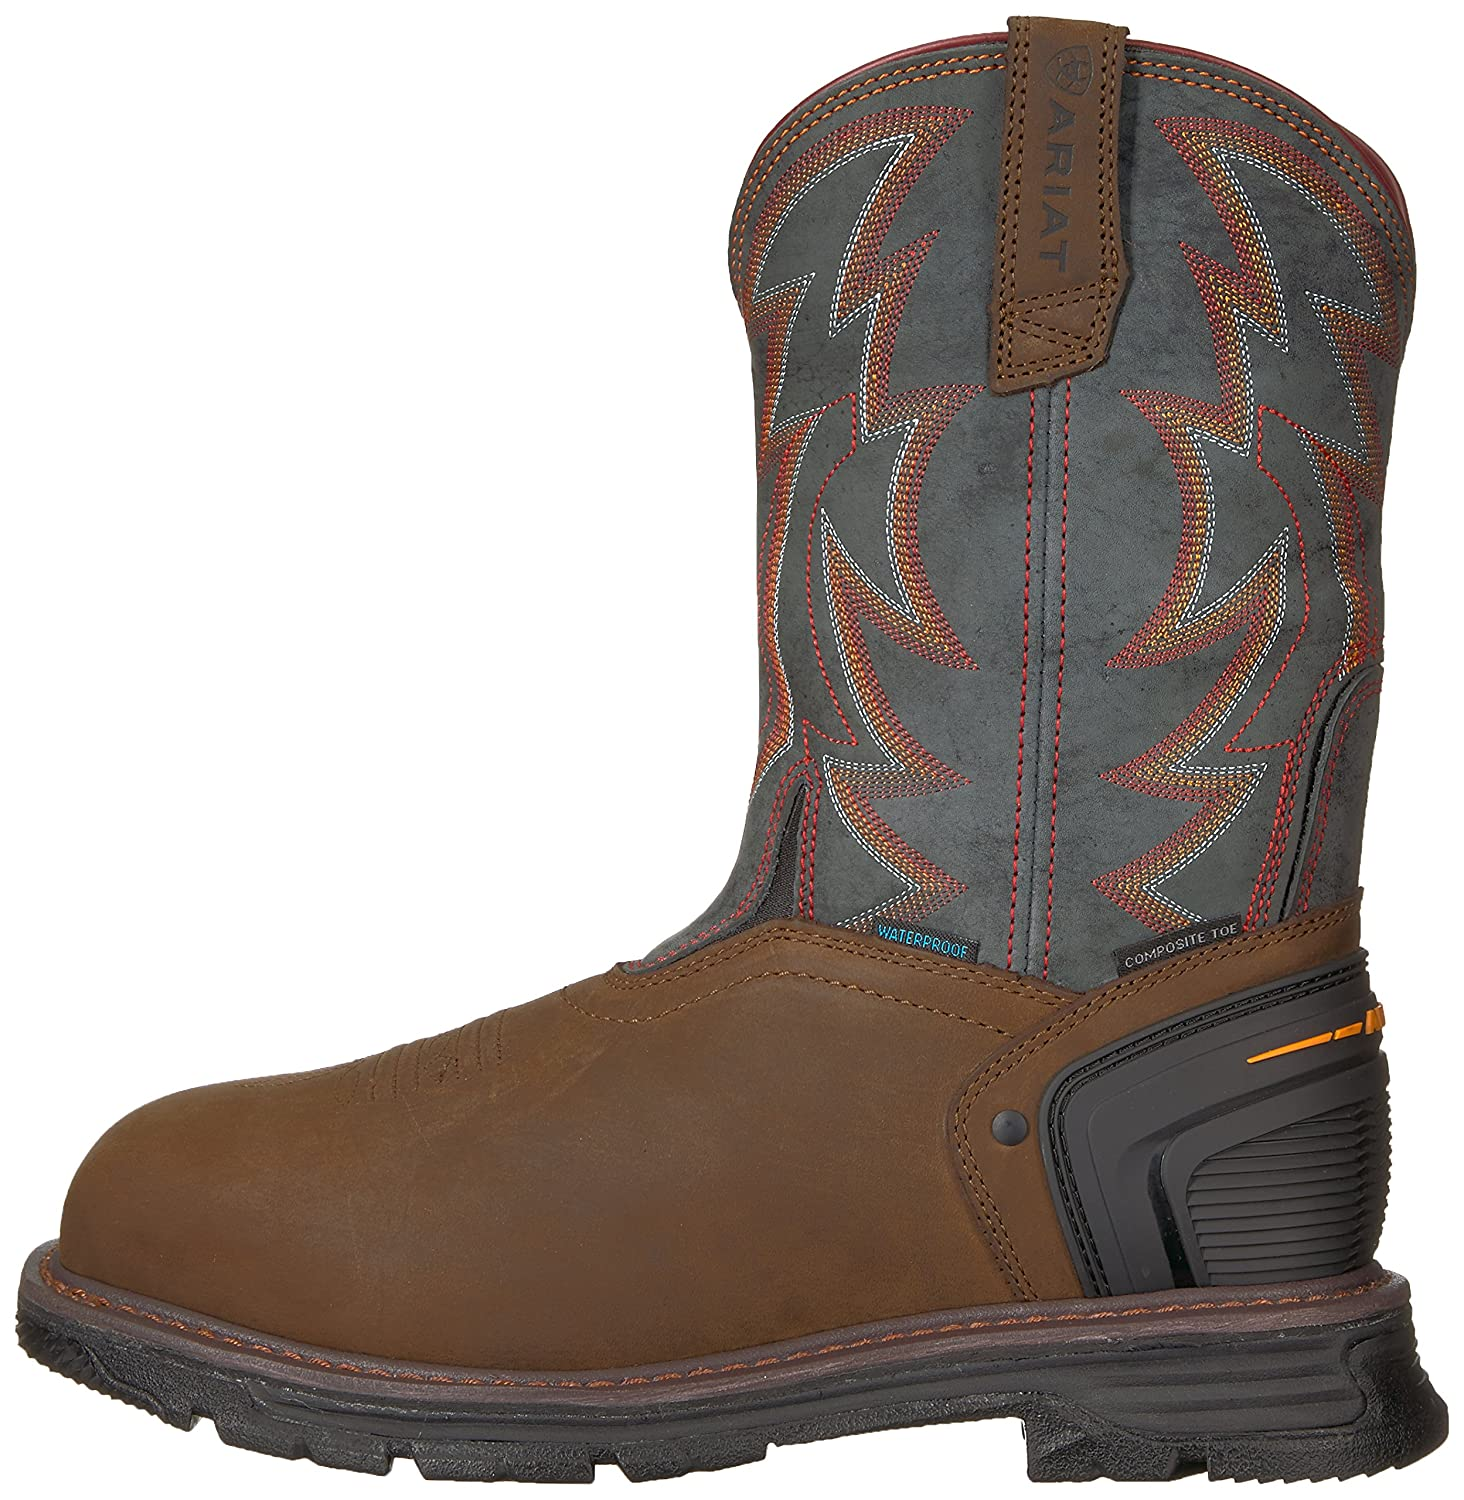 Men's Ariat Catalyst Thunder VX H2O Composite Toe Work Boot, Size: 7.5 D, Oily Distressed Brown Leather